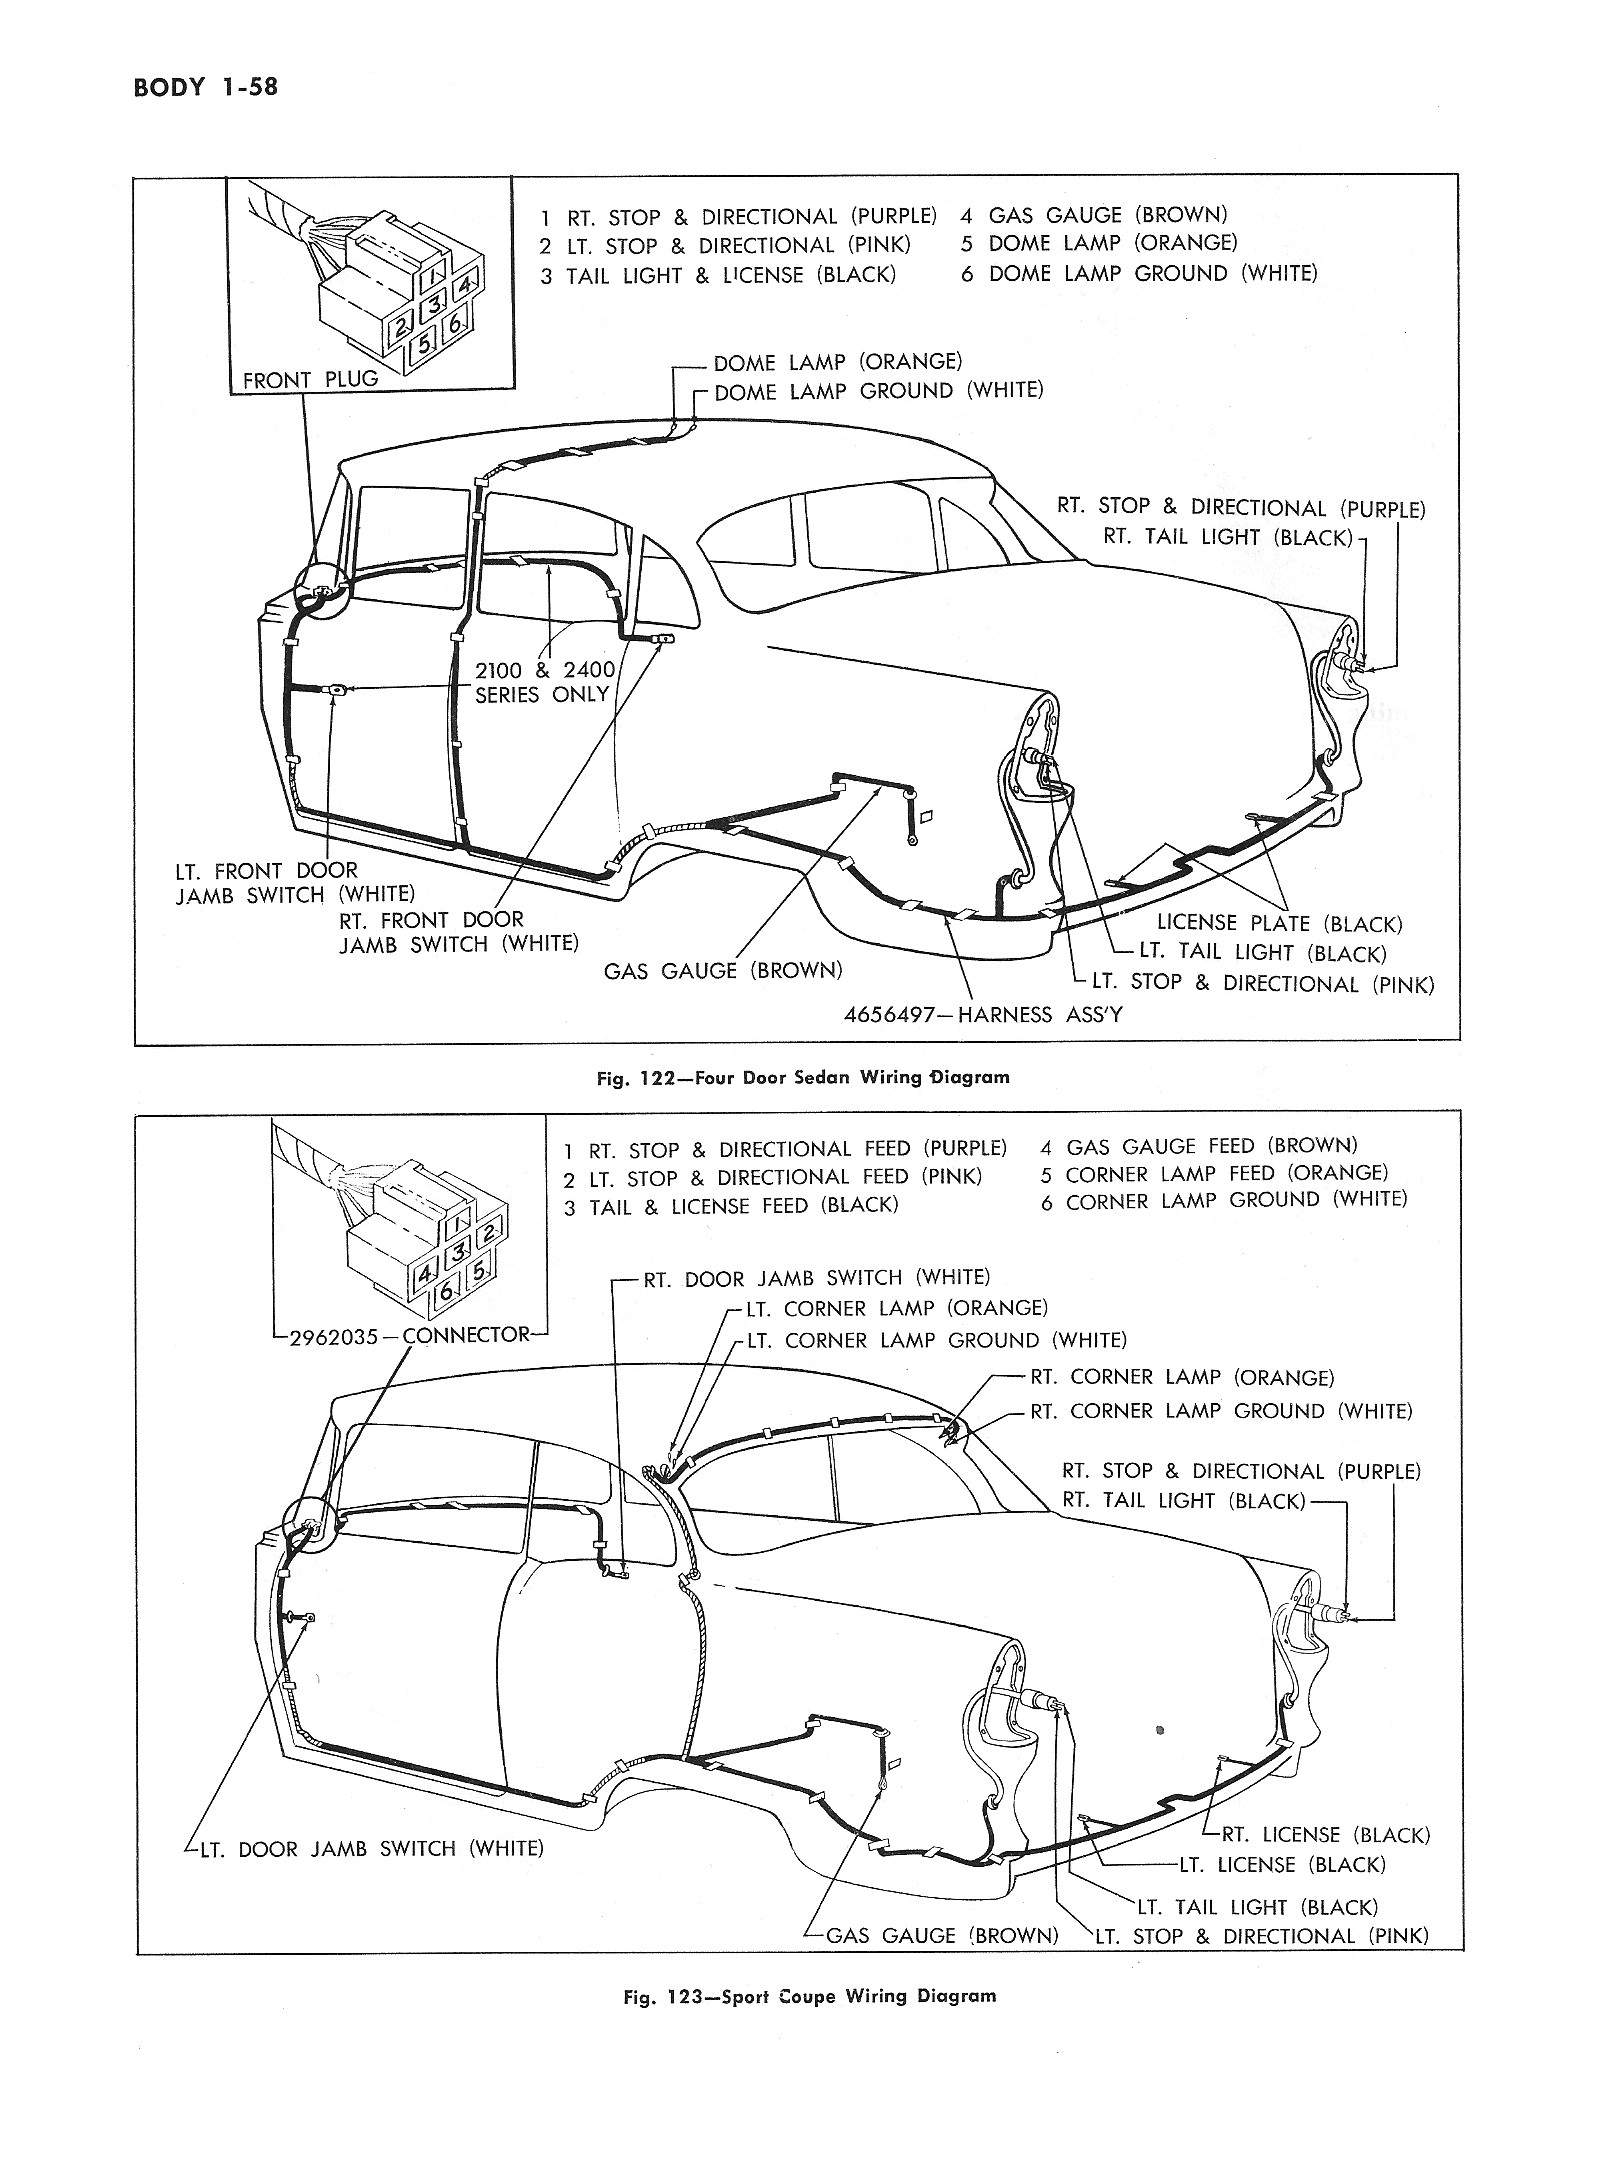 Chevy Wiring Diagrams 1997 Nissan Xe V6 Body Ground Fuse Box Diagram 1955 Passenger Car 2